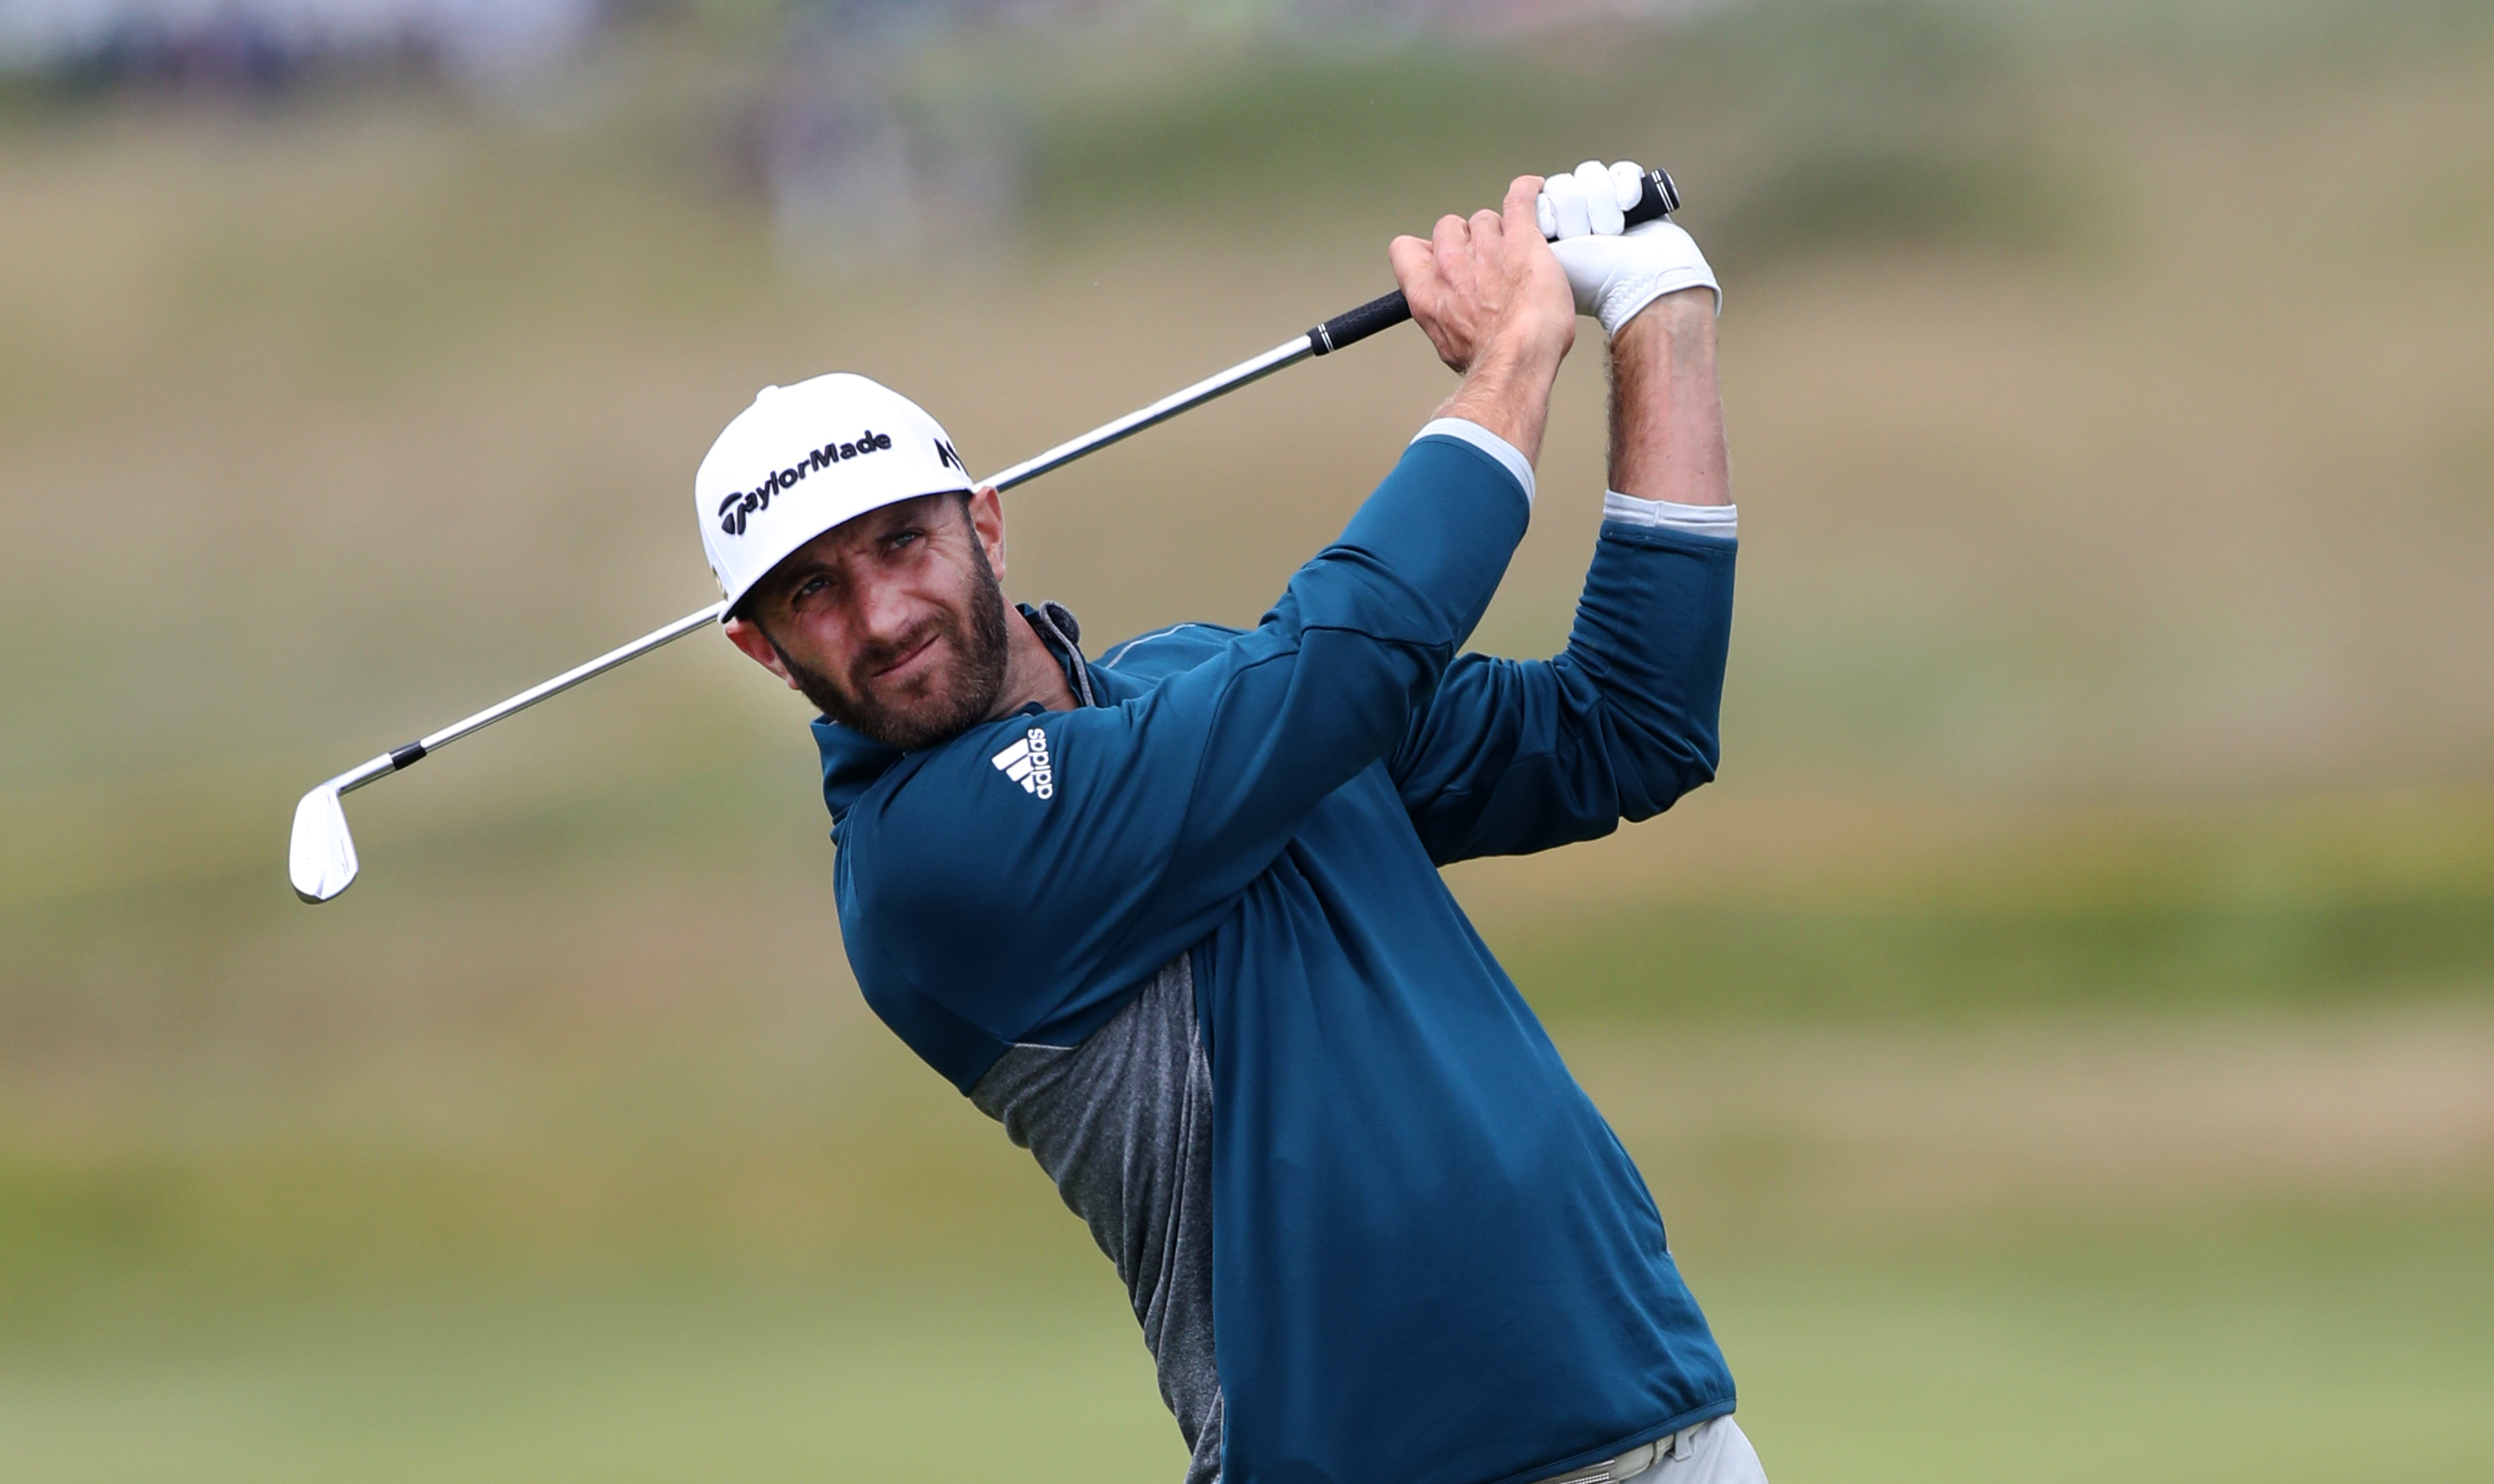 Dustin Johnson of the United States plays a shot from the 4th fairway during a practice round ahead of the British Open Golf Championship at the Royal Troon Golf Club in Troon, Scotland, Wednesday, July 13, 2016. The British Open starts Thursday.(AP Photo